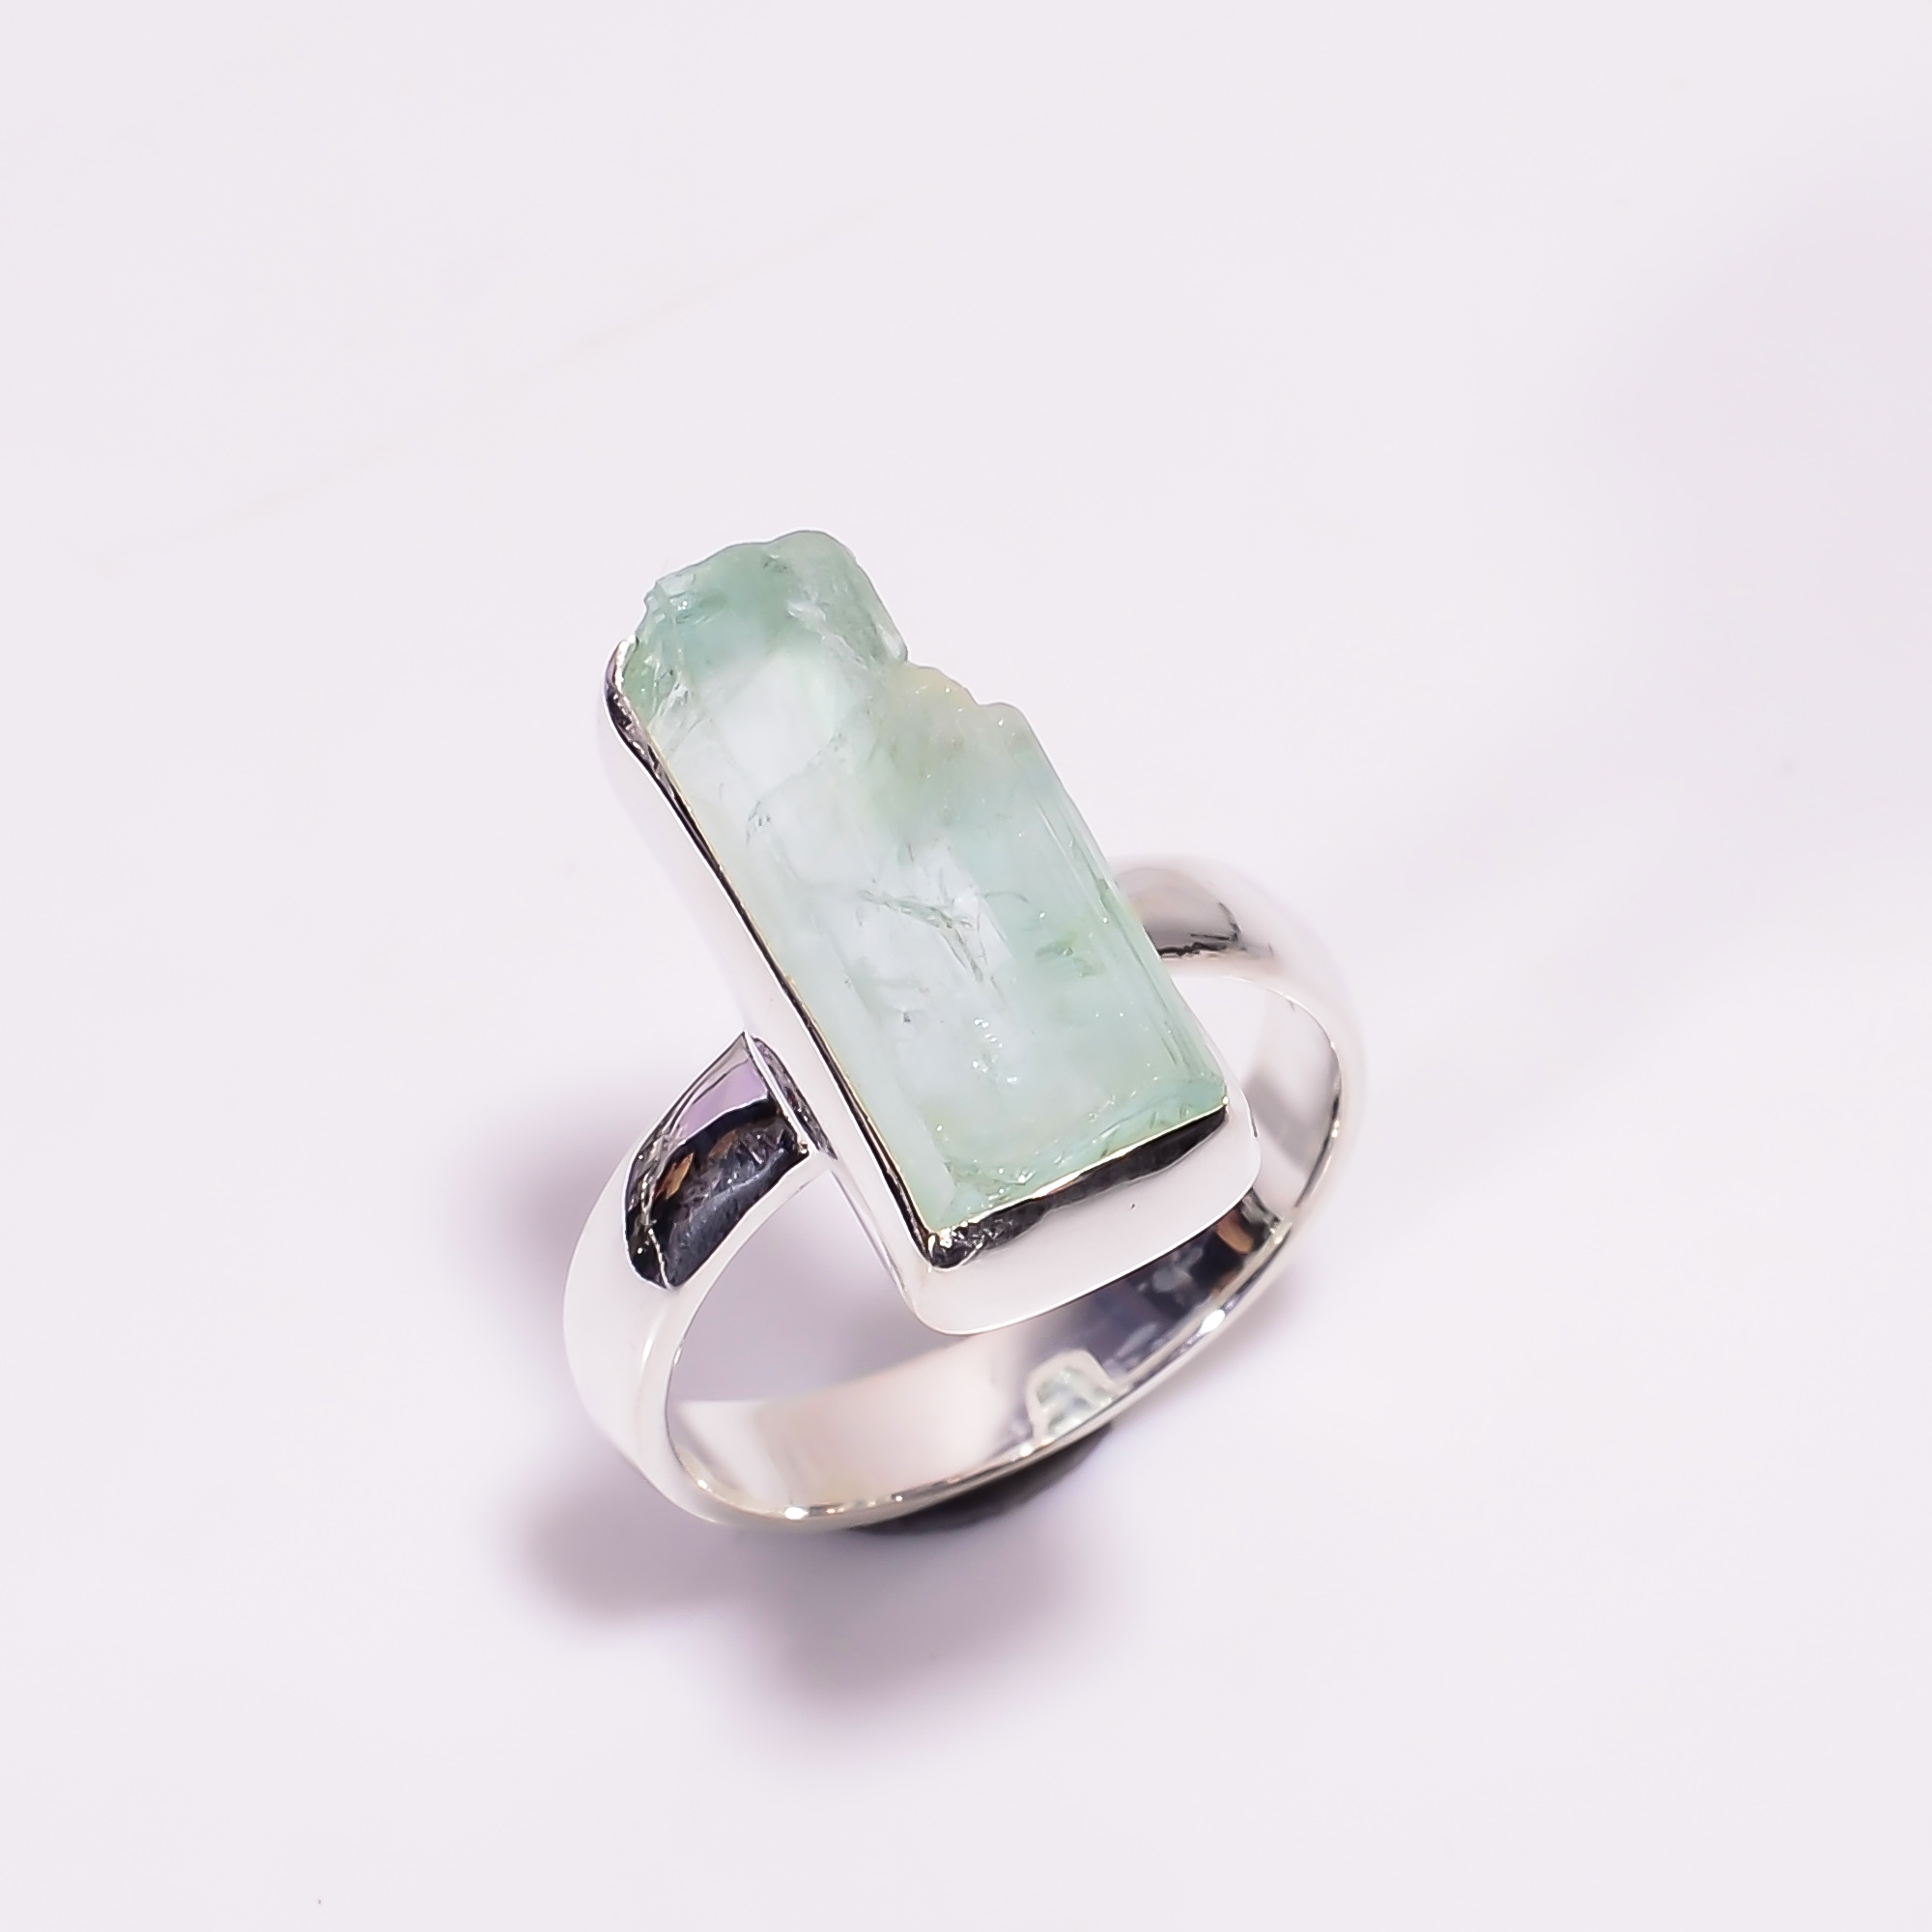 Natural Aquamarine Gemstone 925 Sterling Silver Ring Size US 6.75